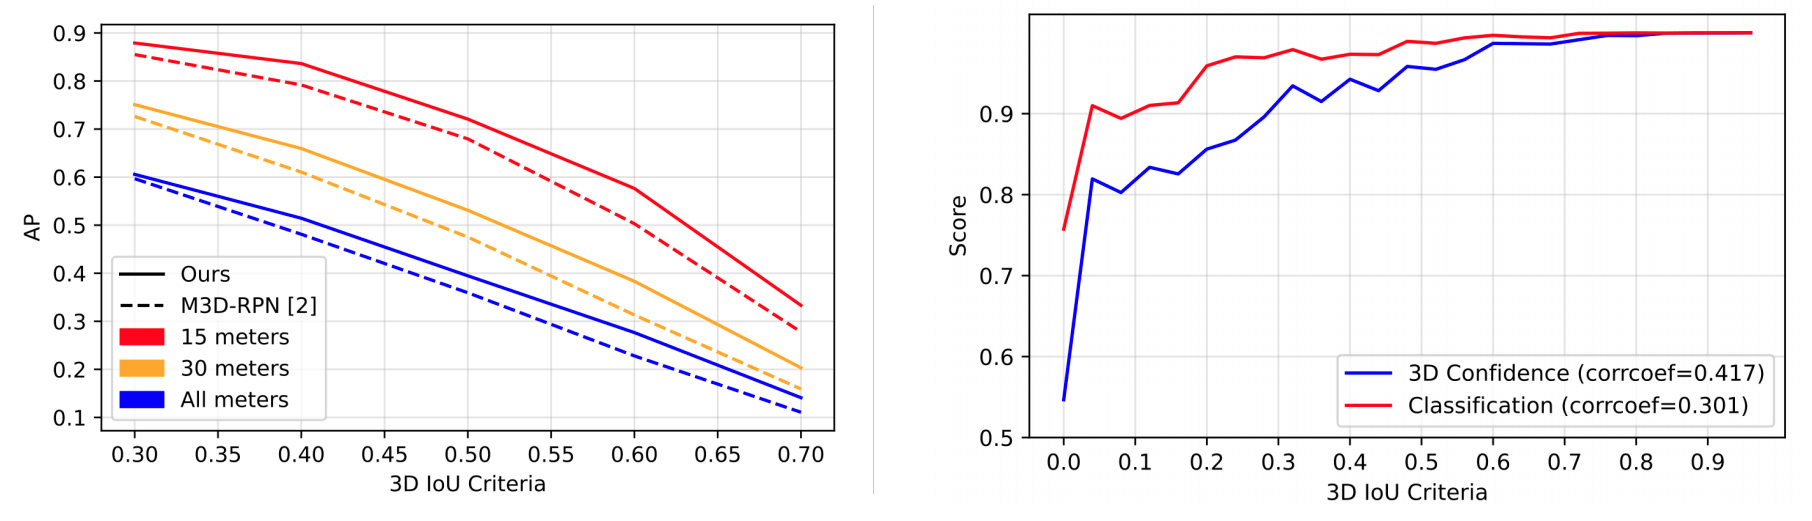 Kinematic 3D ROC and Correlation